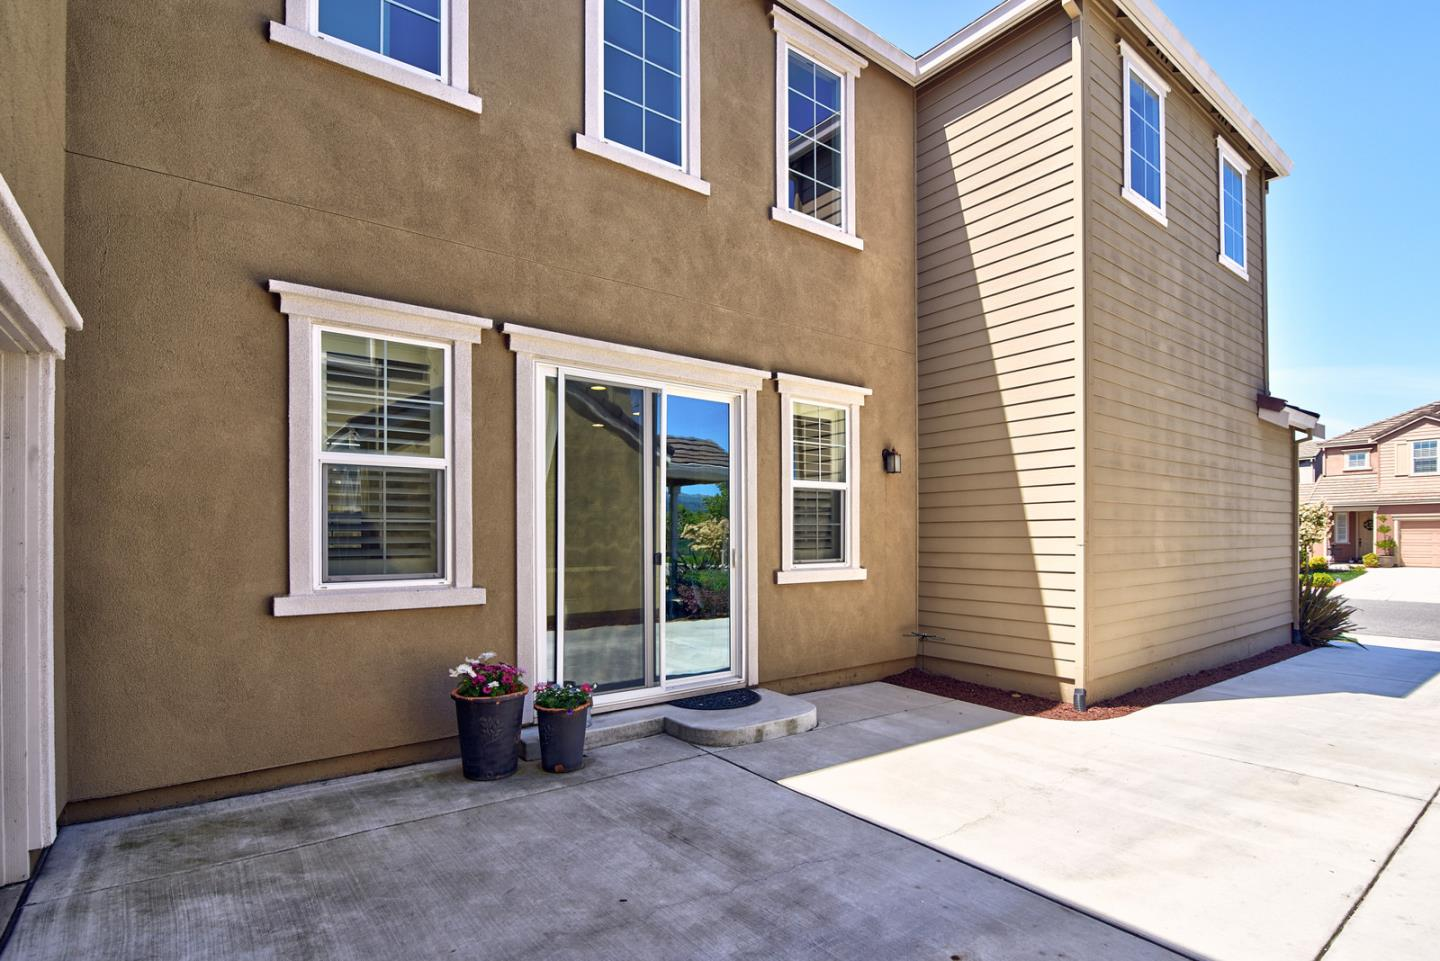 16904 Cory Drive Morgan Hill, CA 95037 - MLS #: ML81700633